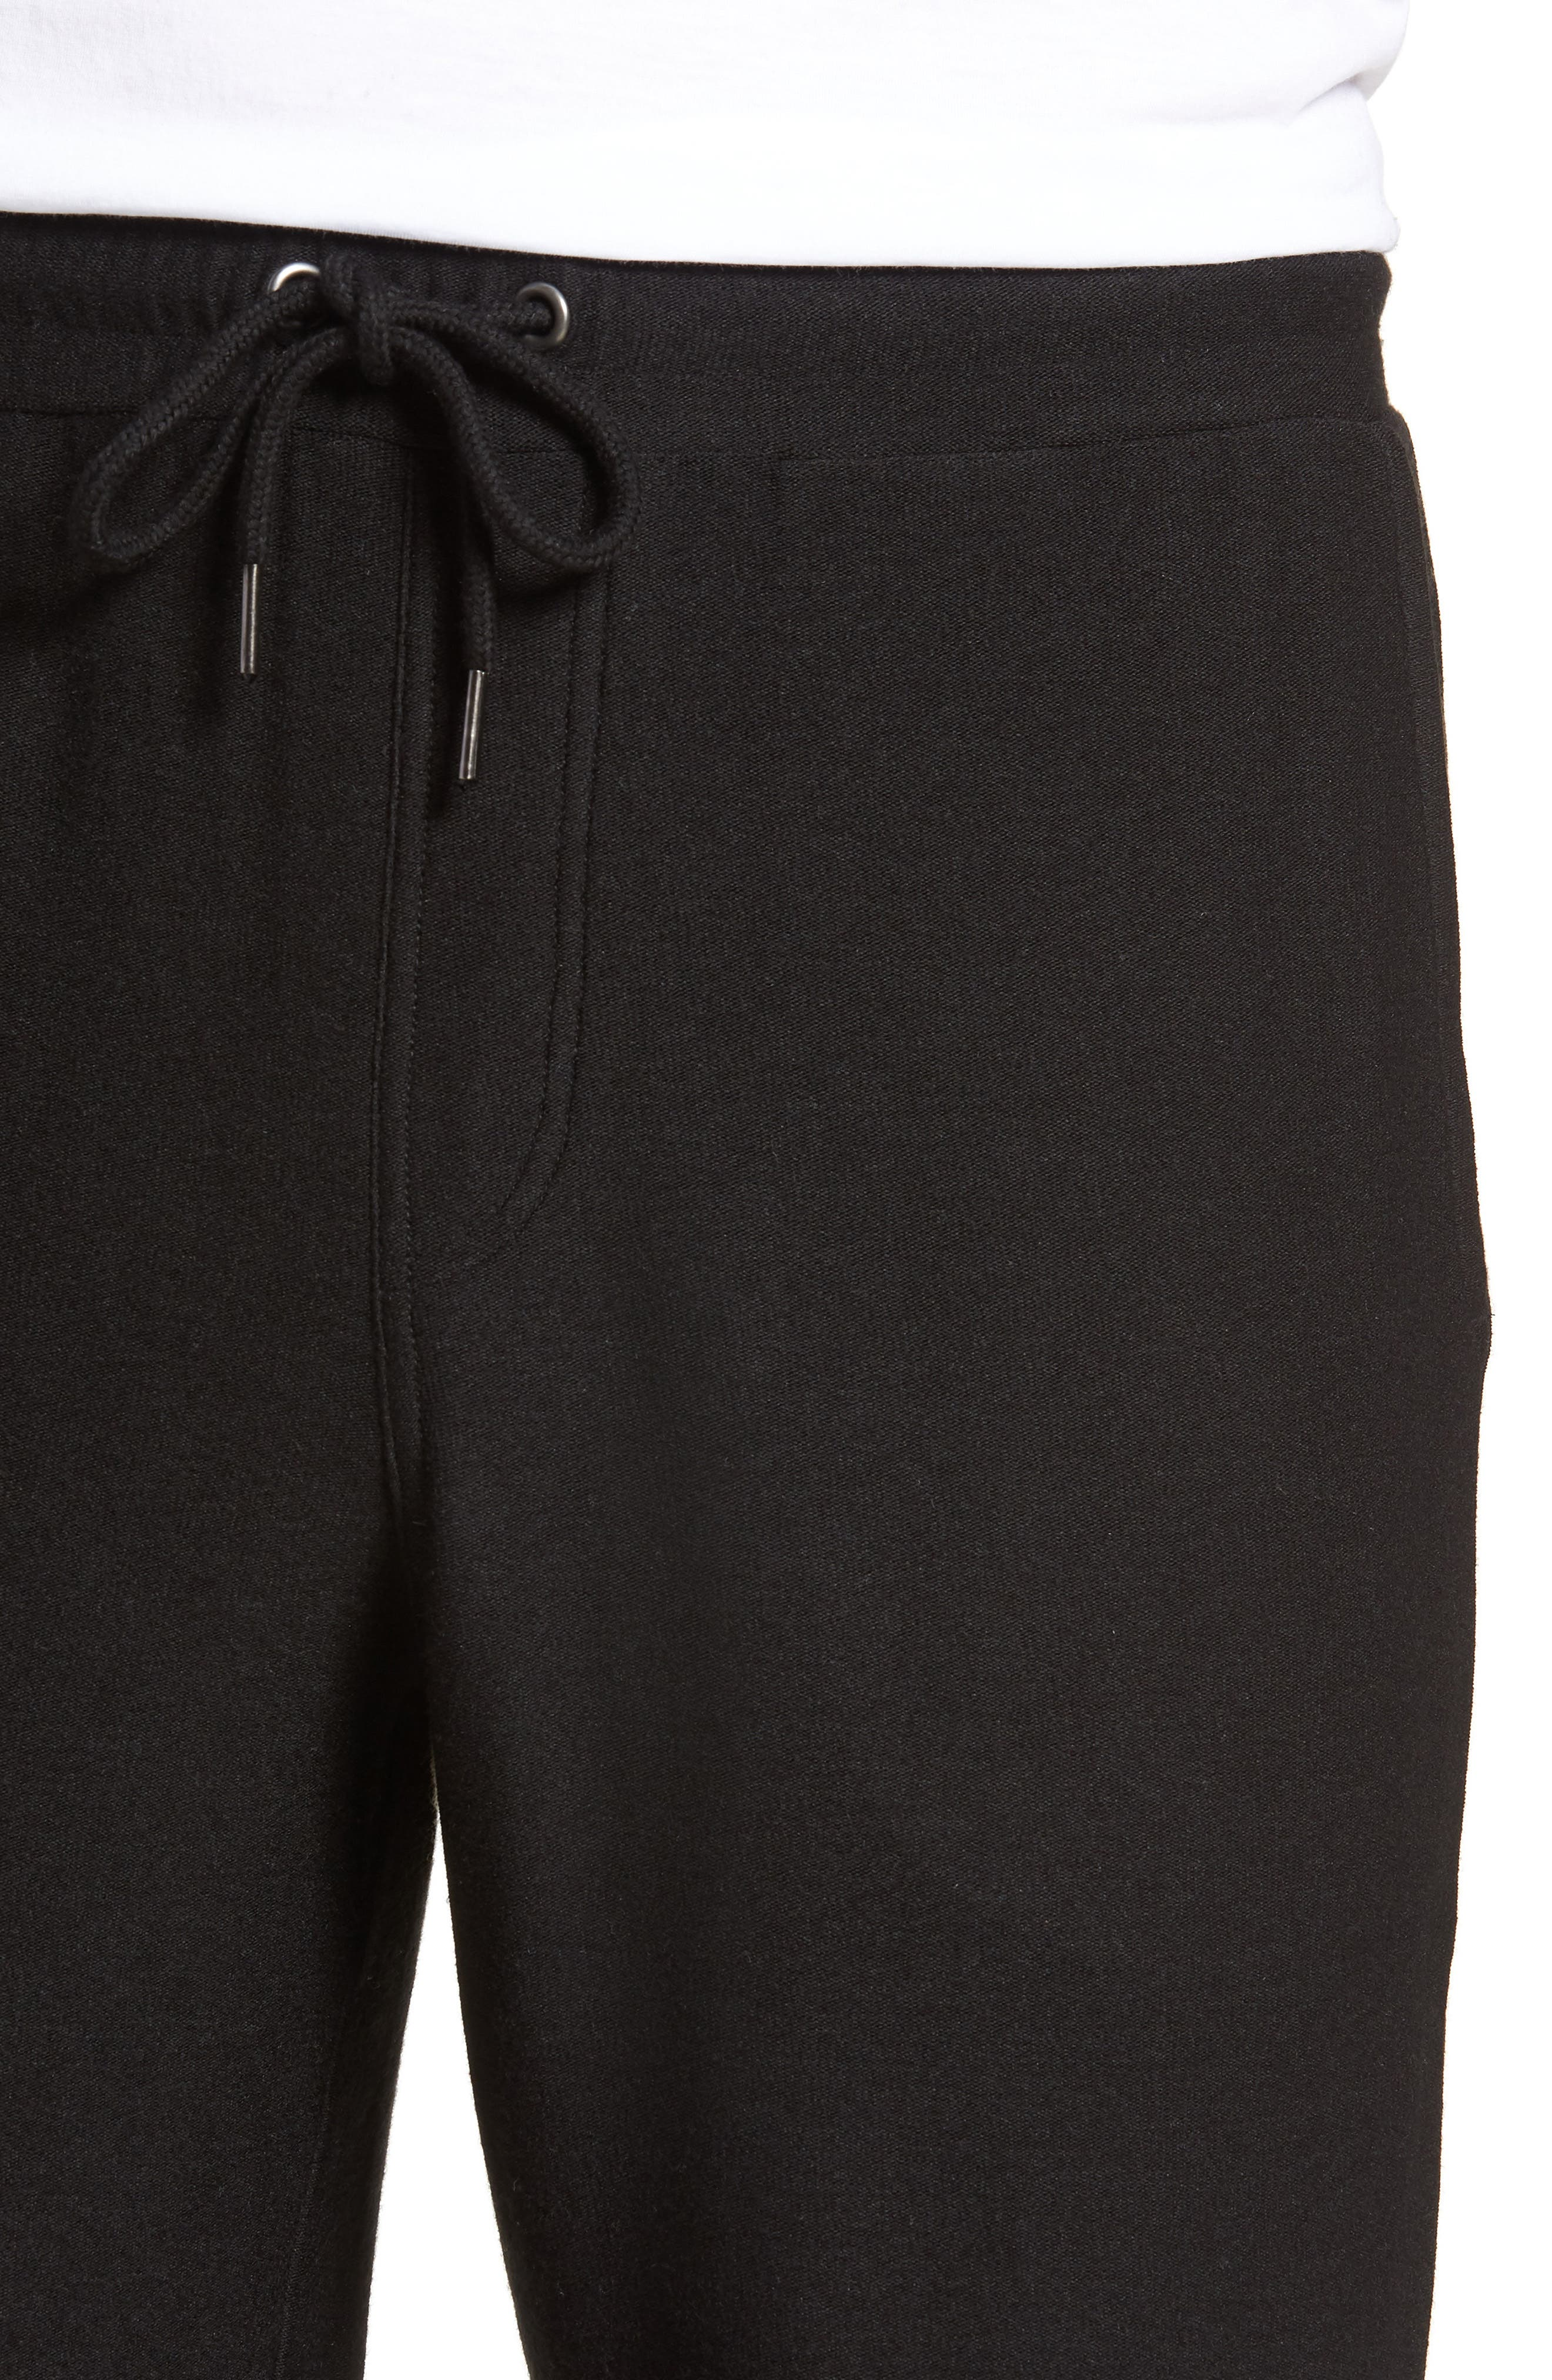 Lounge Shorts,                             Alternate thumbnail 4, color,                             BLACK